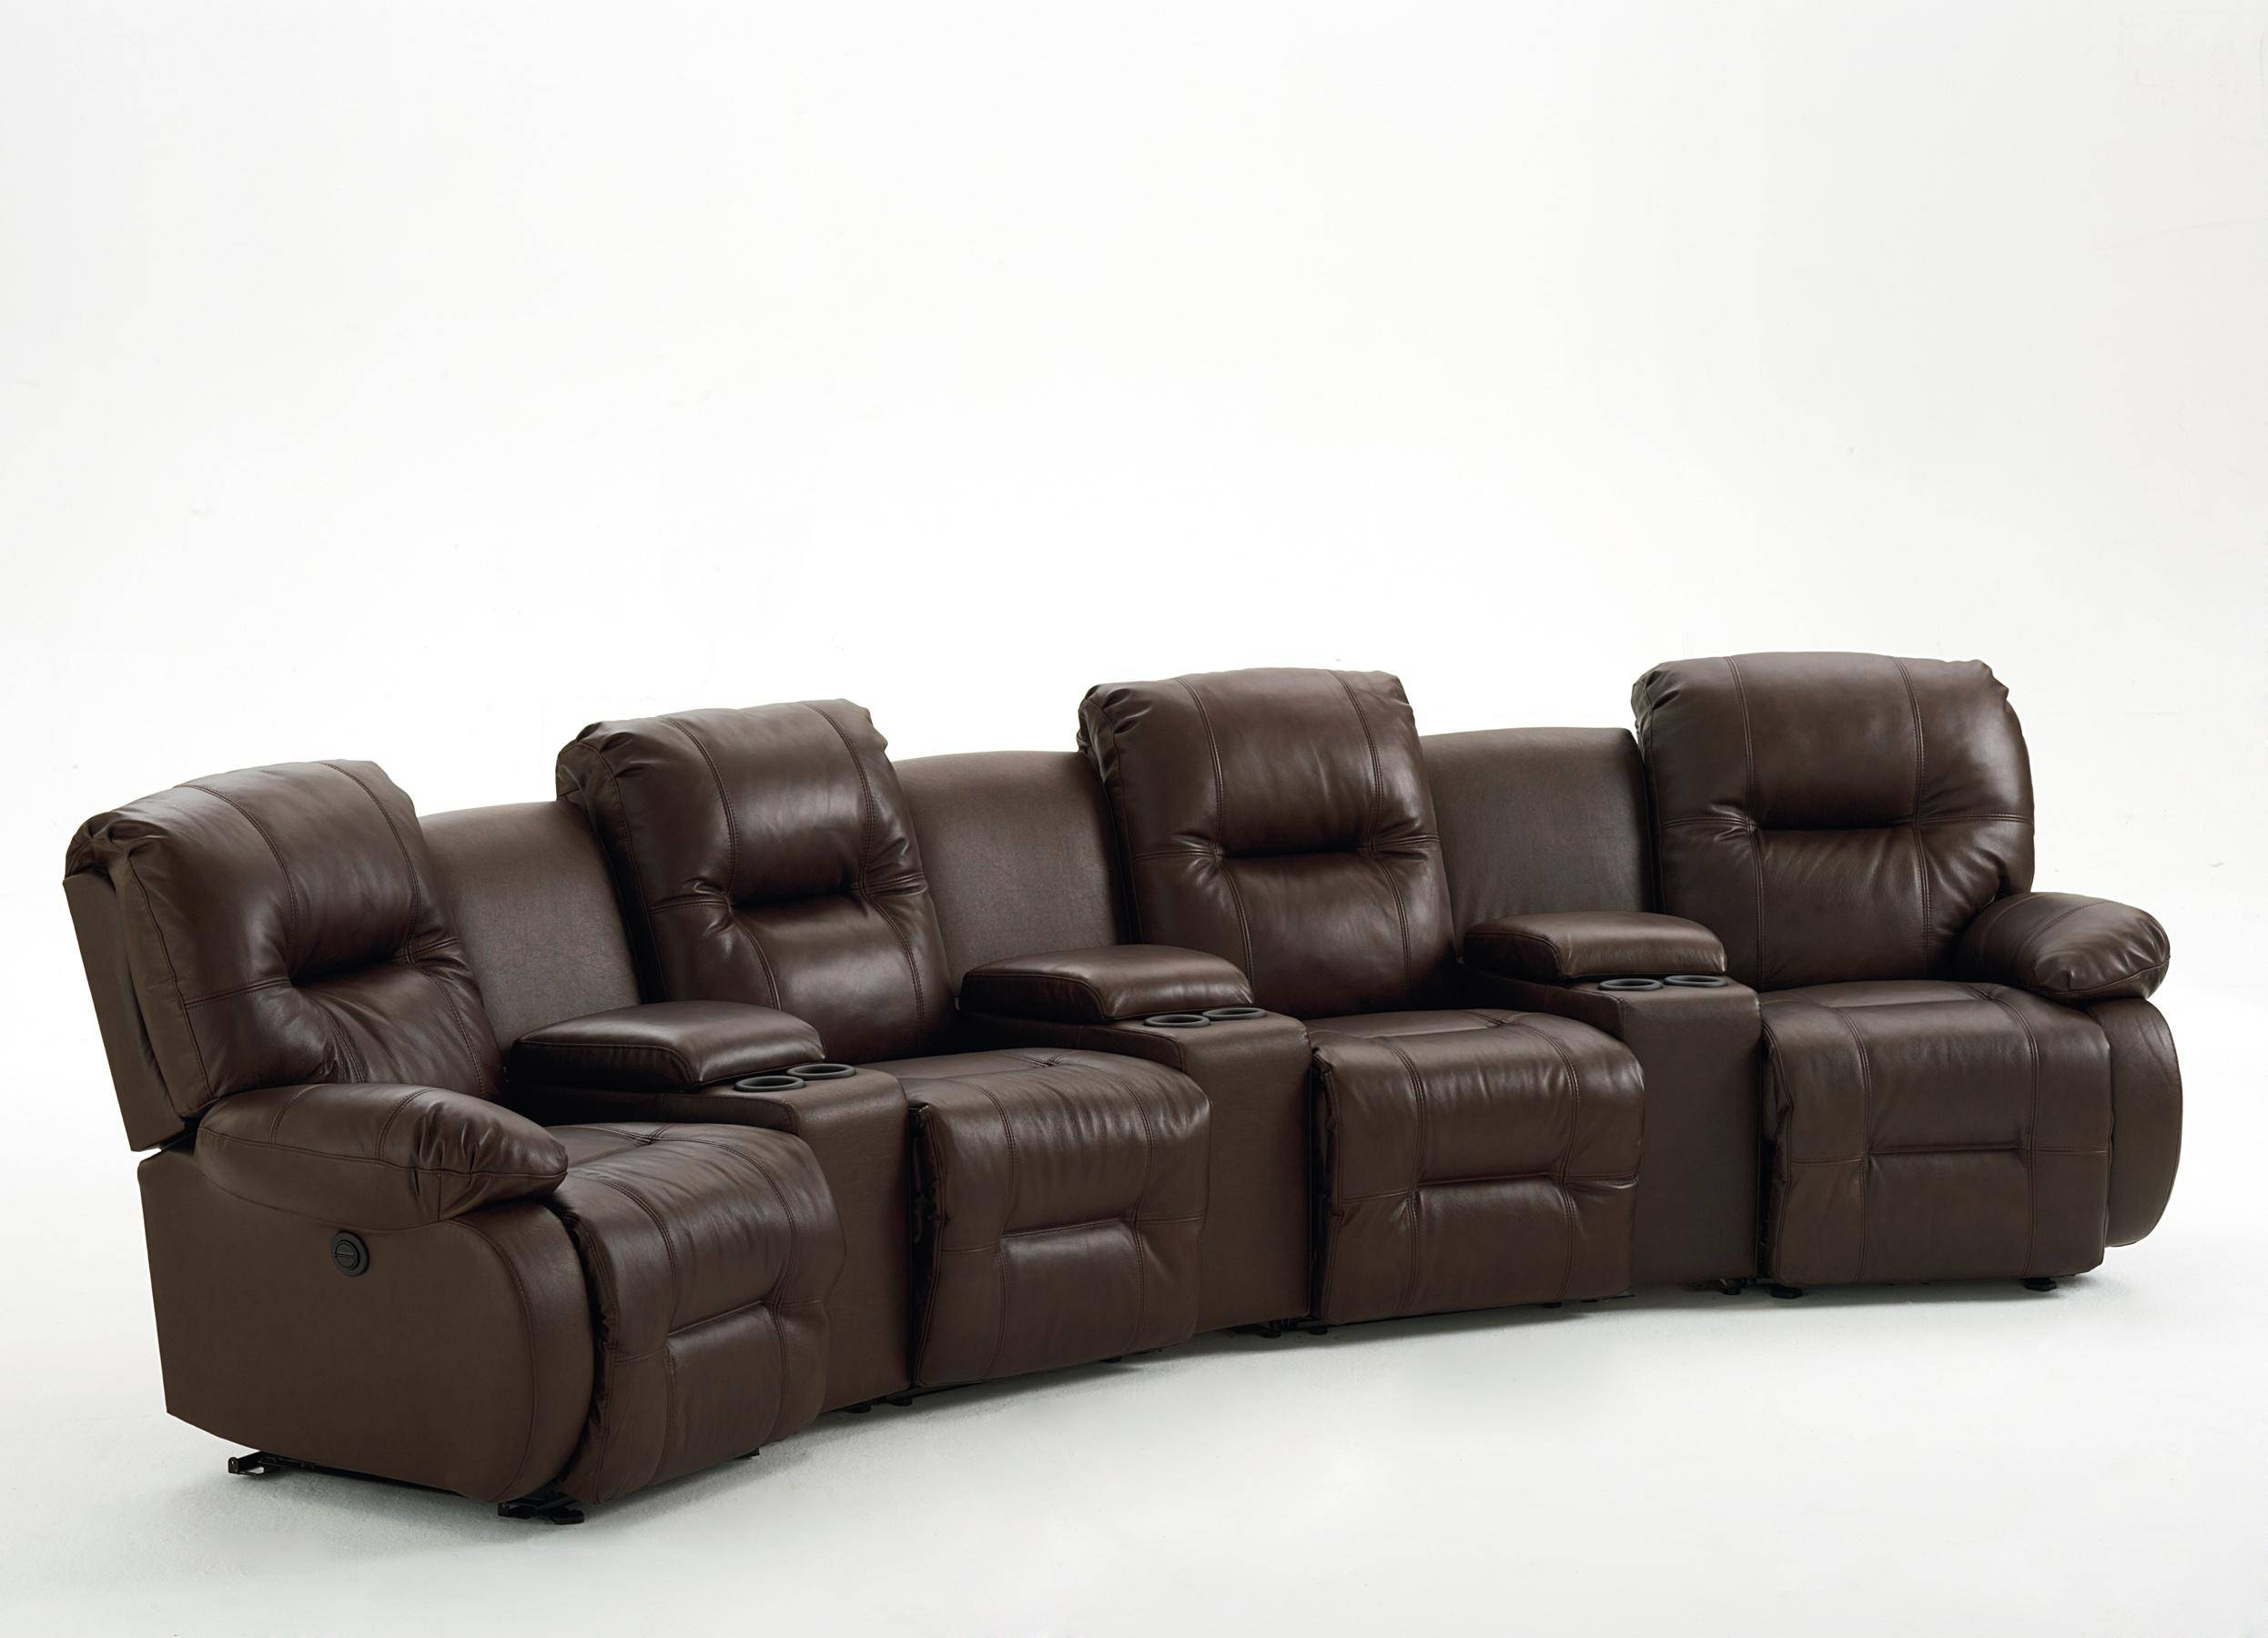 Seven Piece Power Reclining Home Theater Group With Three Drink intended for Sofas With Drink Holder (Image 12 of 15)